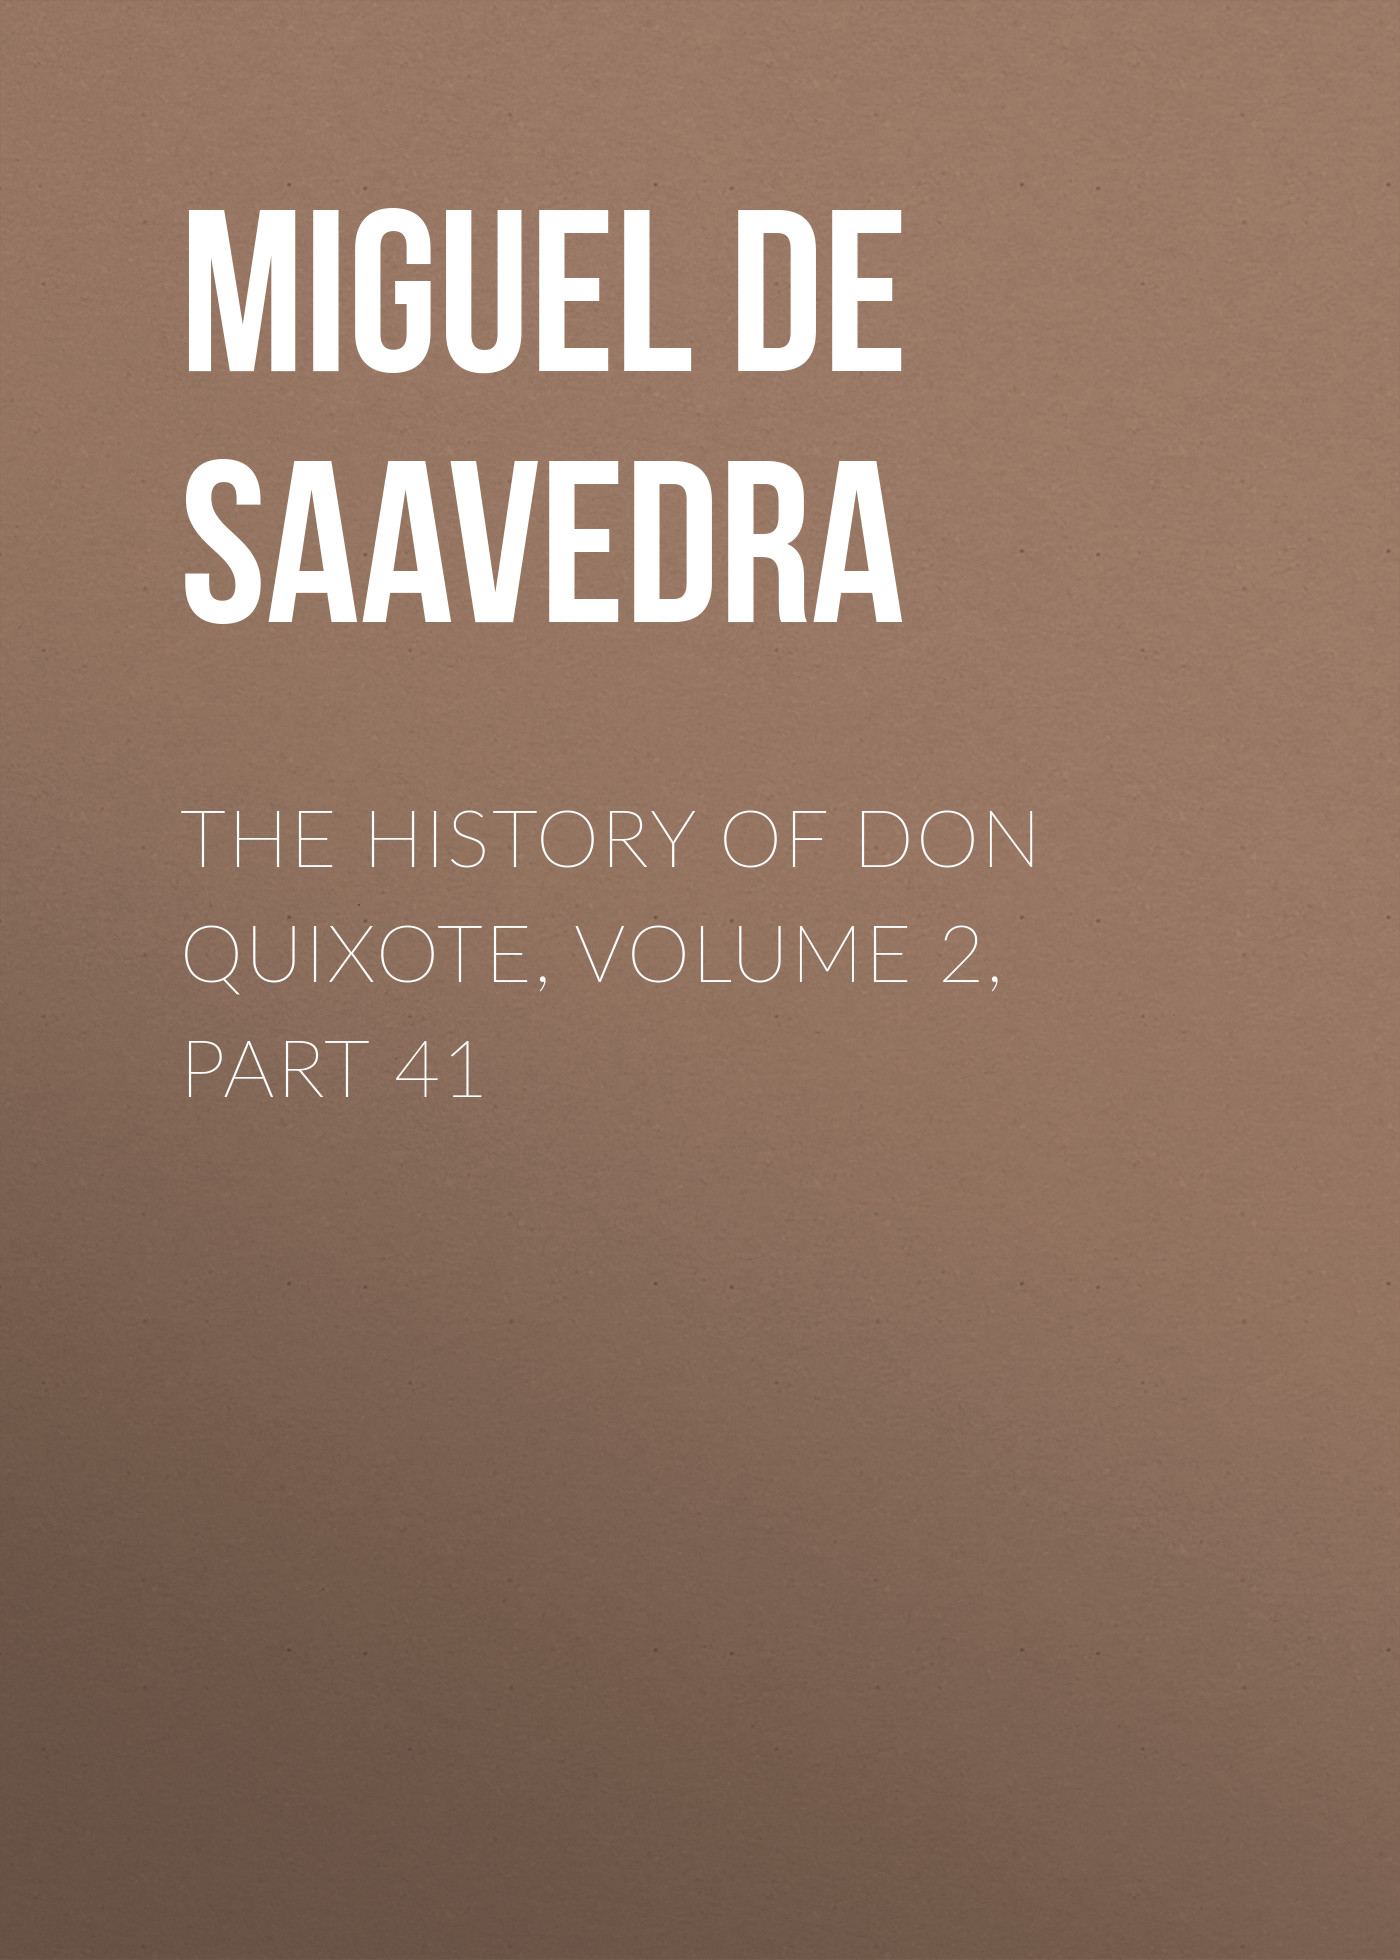 the history of don quixote volume 2 part 41